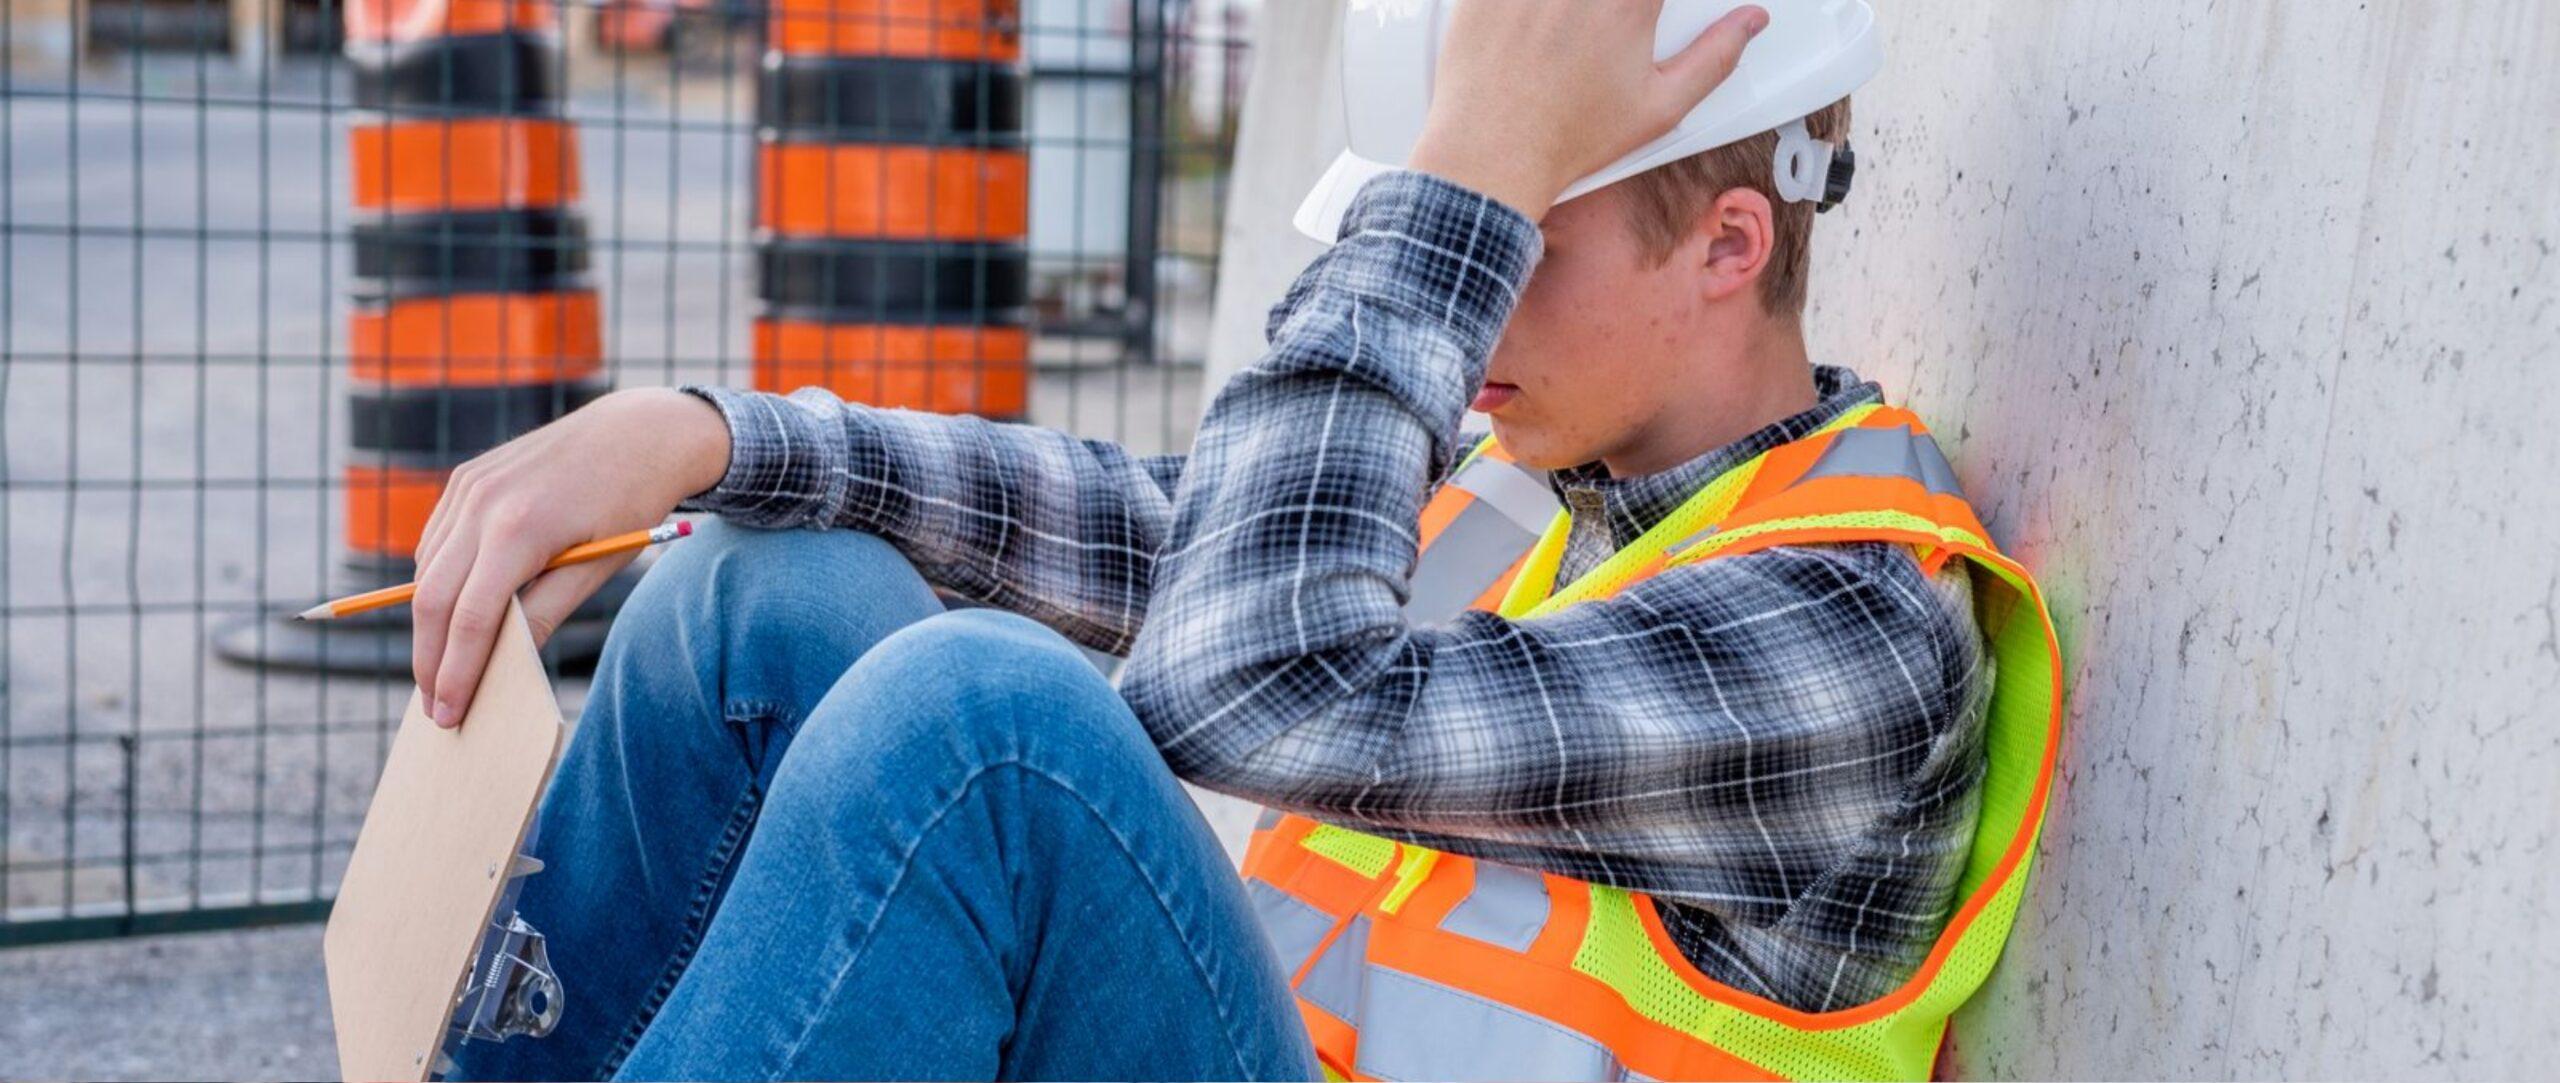 Overwhelmed construction worker taking a break